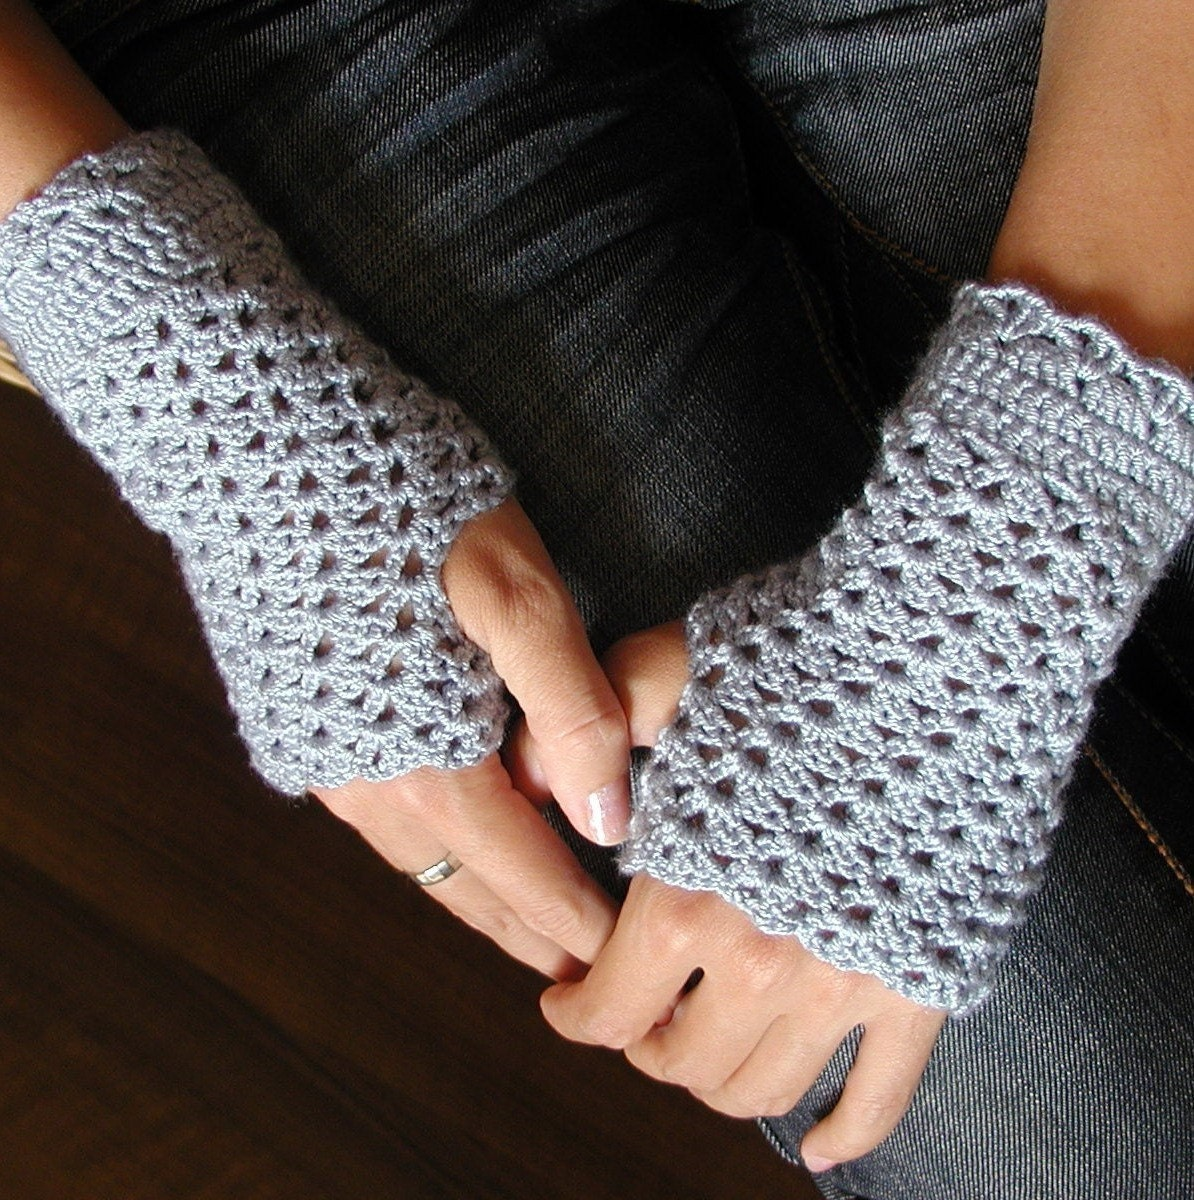 Crocheting Mittens : Crocheted Fingerless Mittens PDF Crochet Pattern by FrougesArt